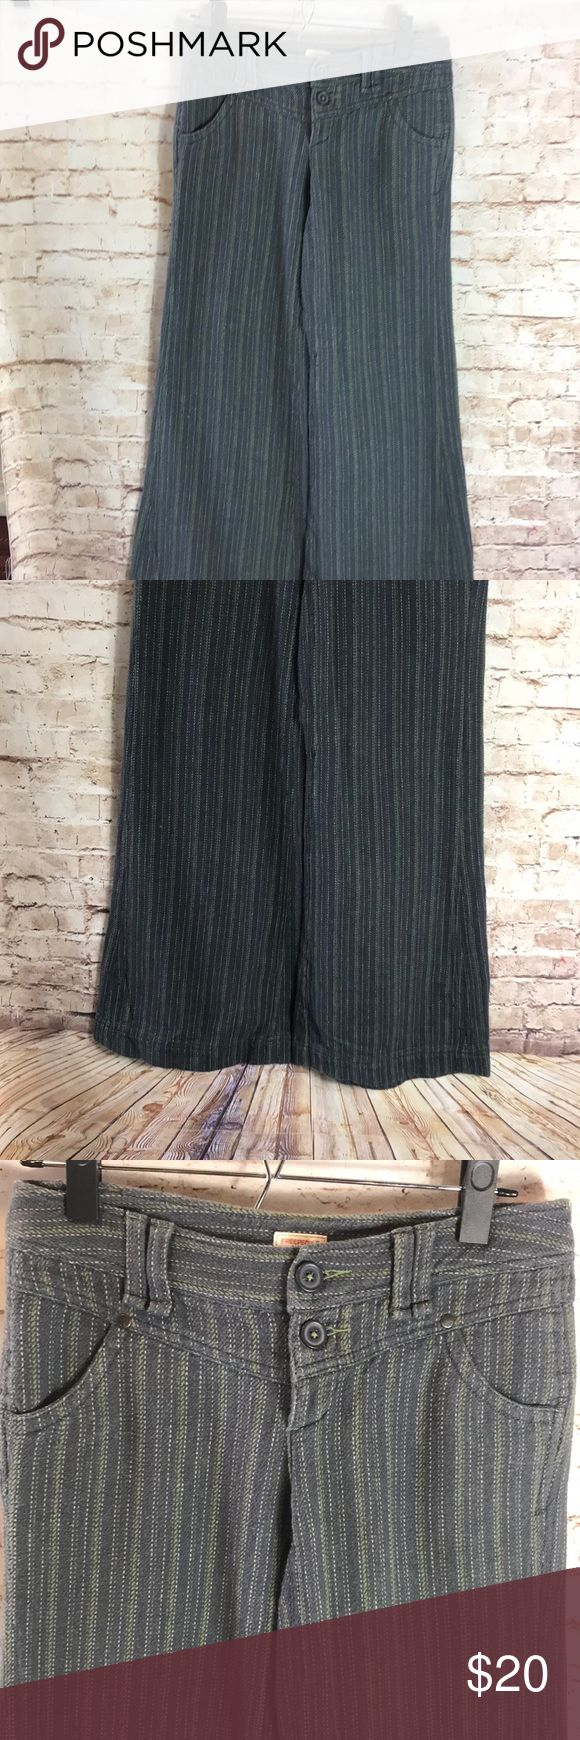 """✨FREE PEOPLE✨ Women's free people wide leg pants size 2   Laying Flat 🔹Waist: 14.5"""" 🔹Rise: 8"""" 🔹Inseam: 28"""" 🔹Condition : Preowned no rips, tears , marks or stains . Pet free smoke free Free People Pants Boot Cut & Flare"""